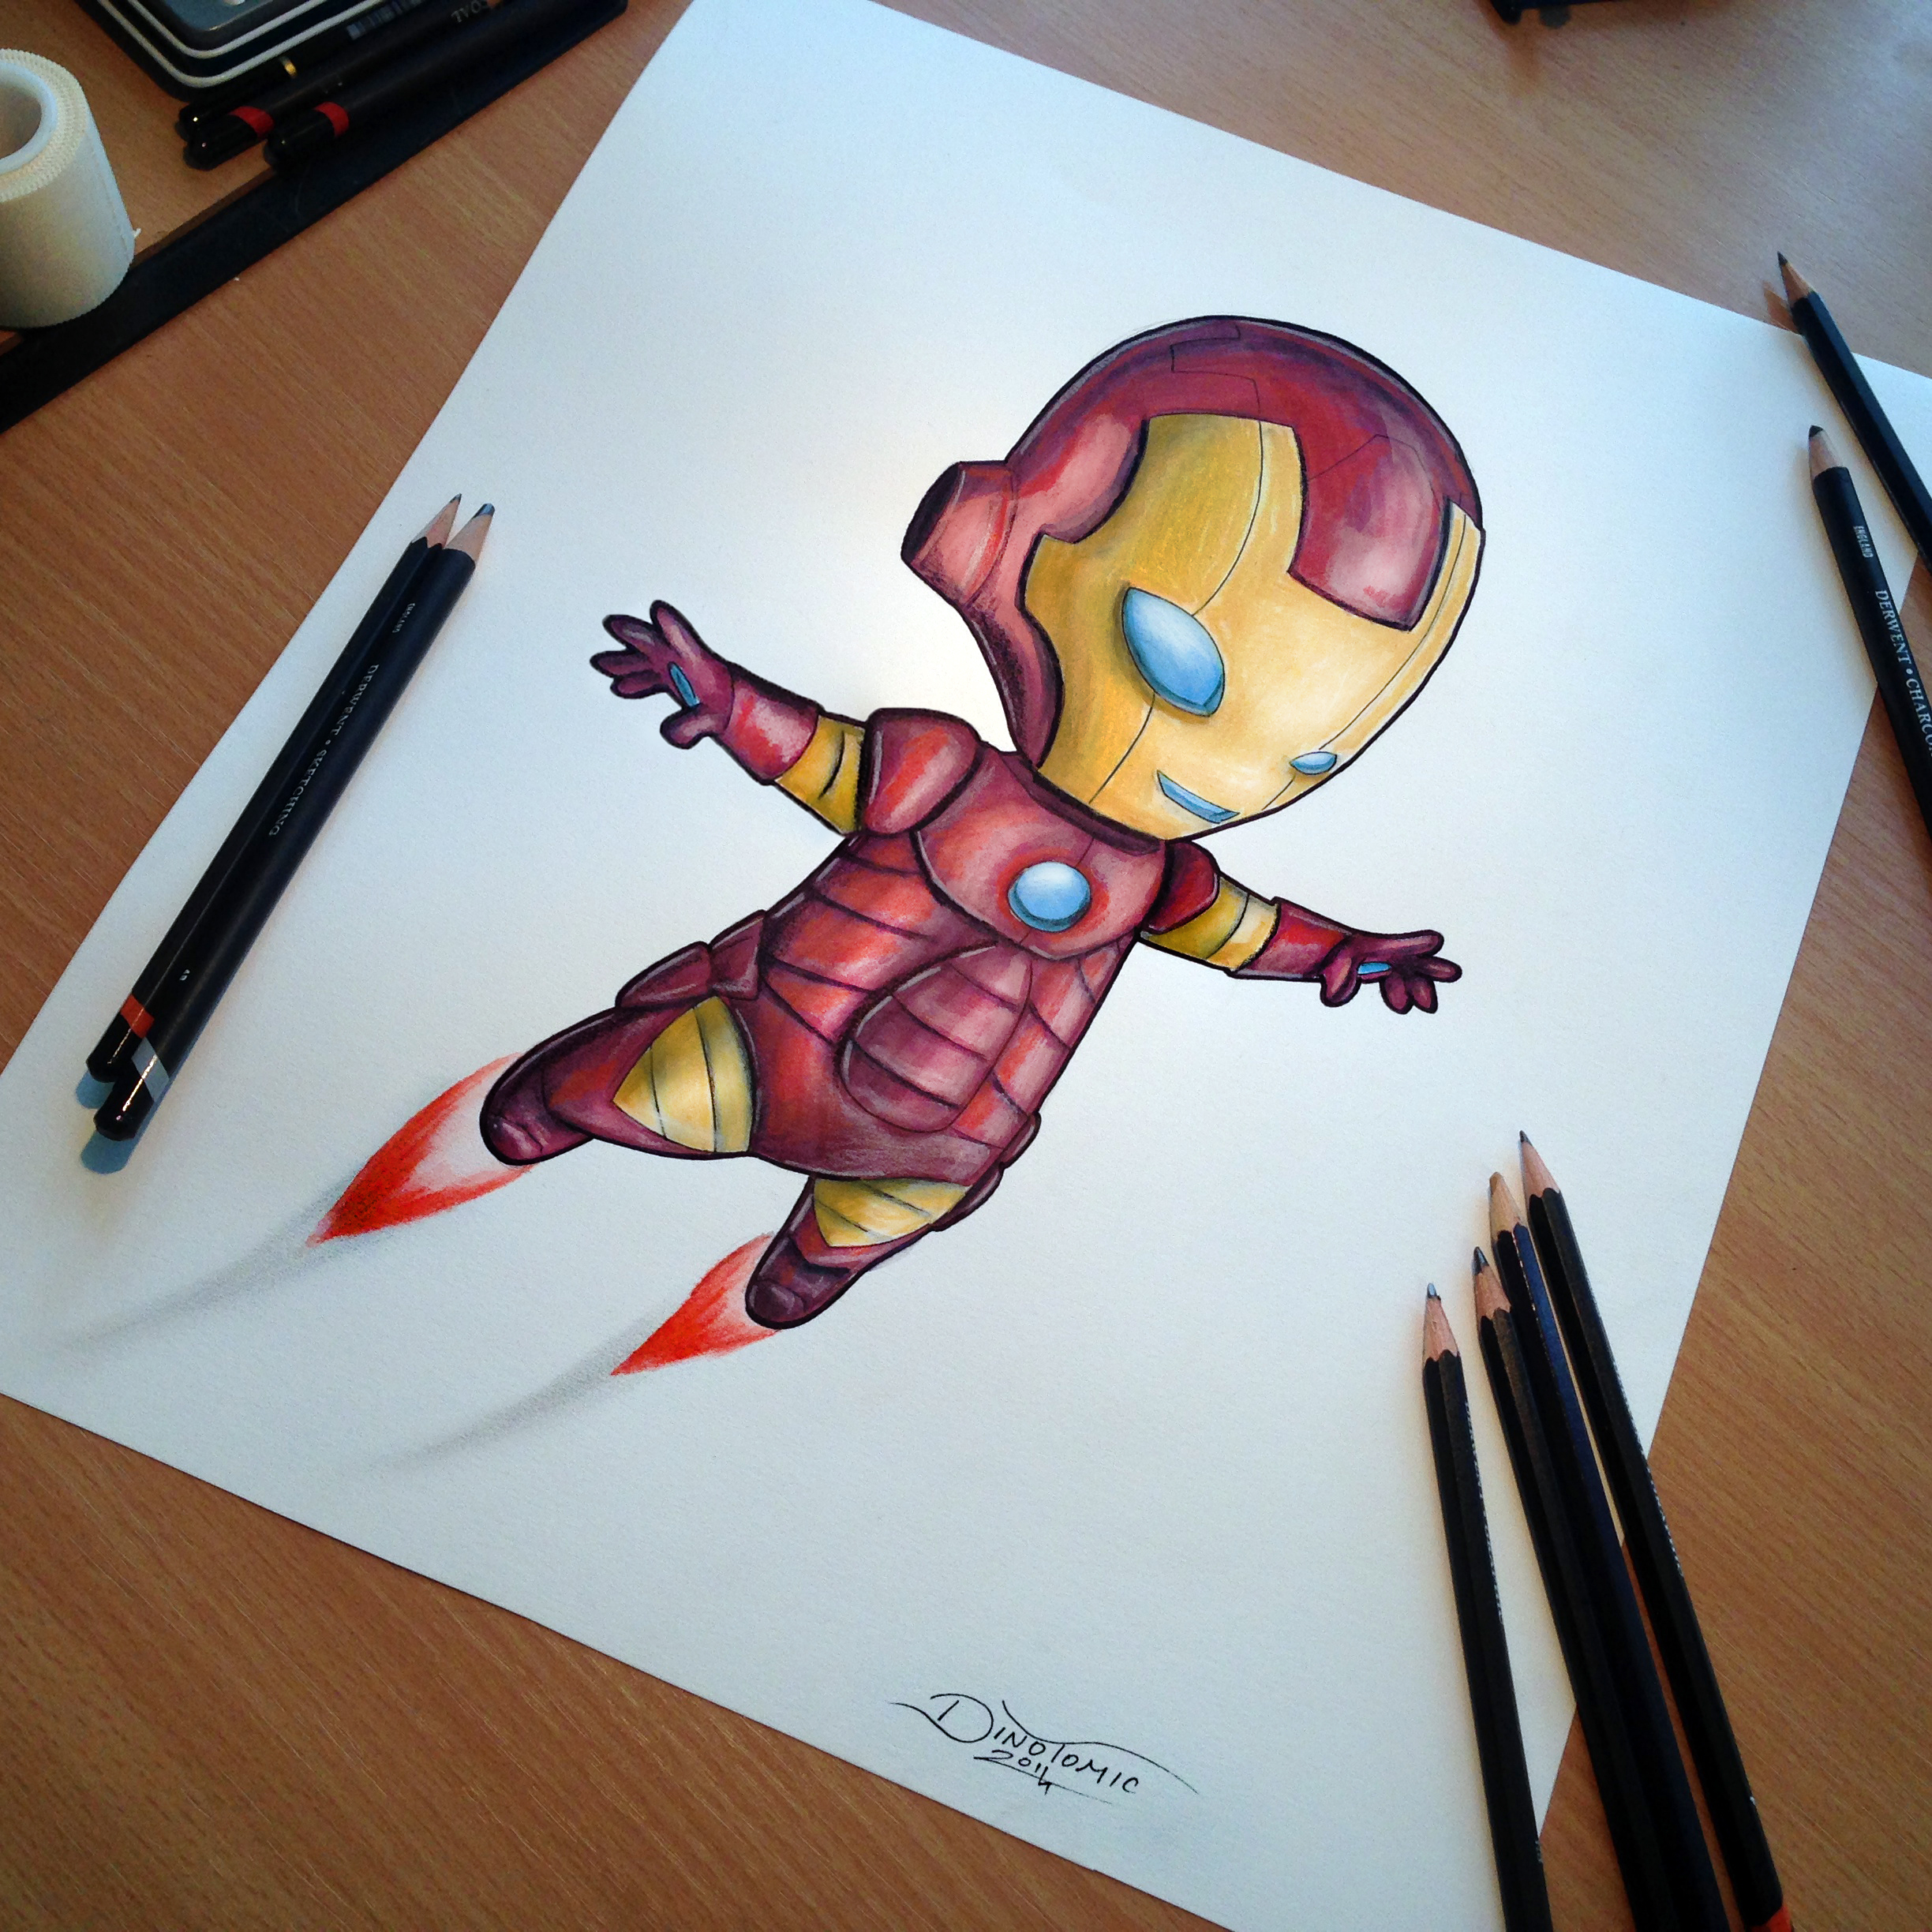 Baby Iron Man Pencil Drawing By AtomiccircuS On DeviantArt